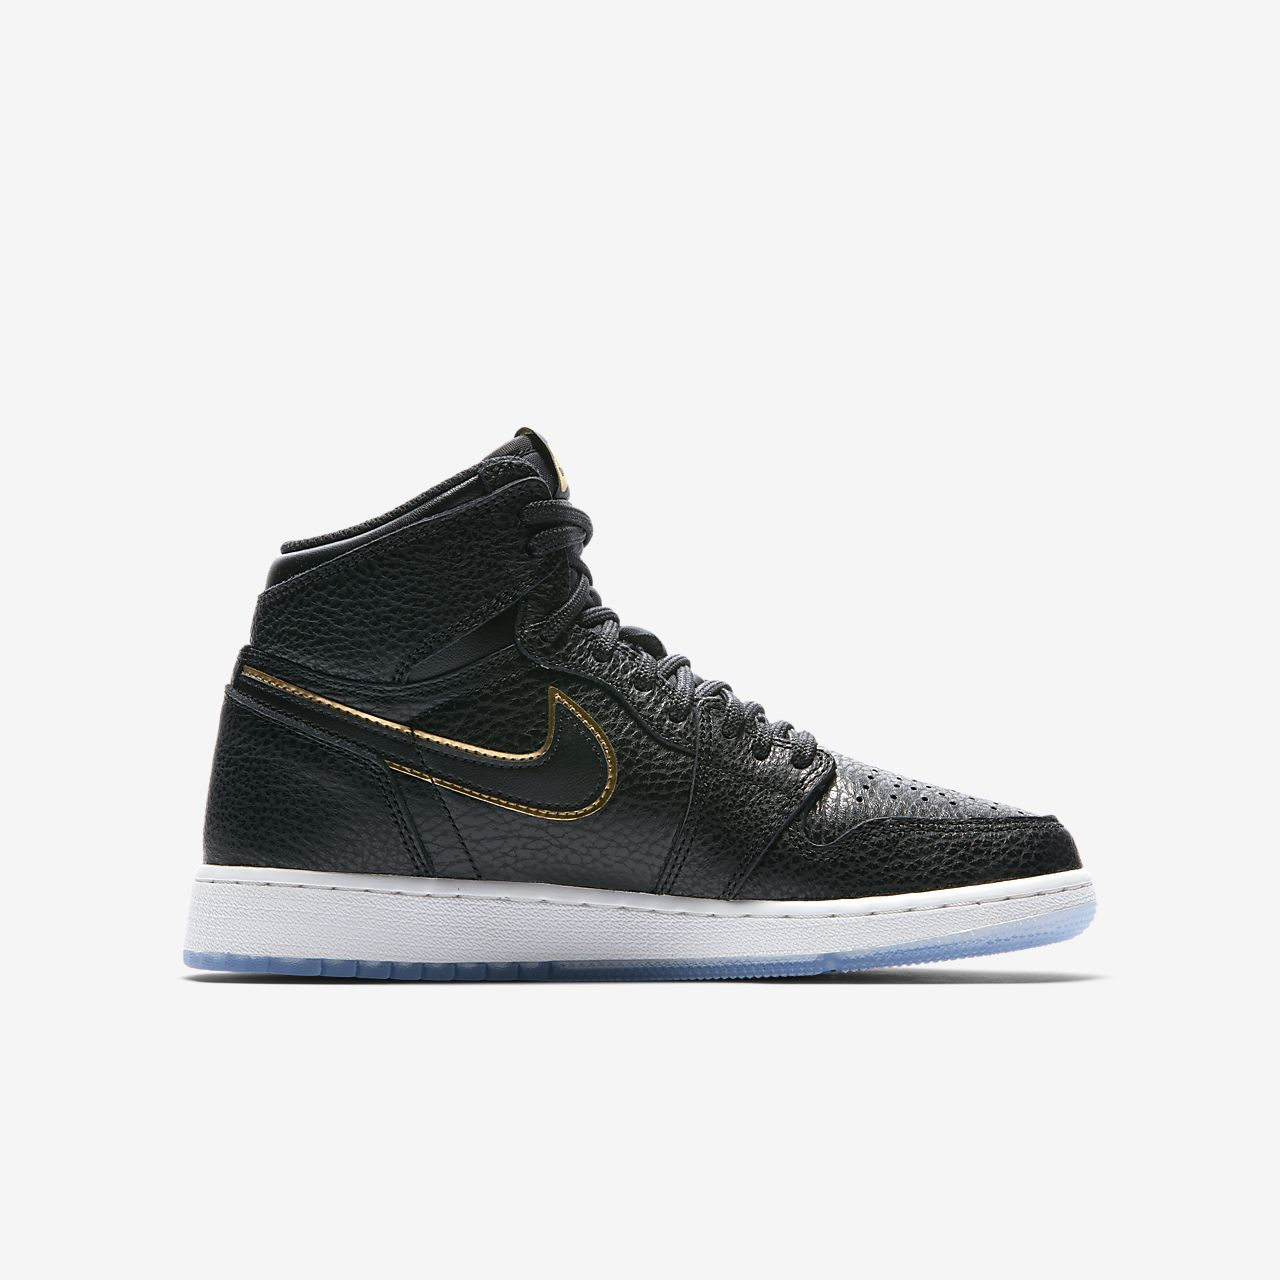 nike air jordan 1 retro high gs nz